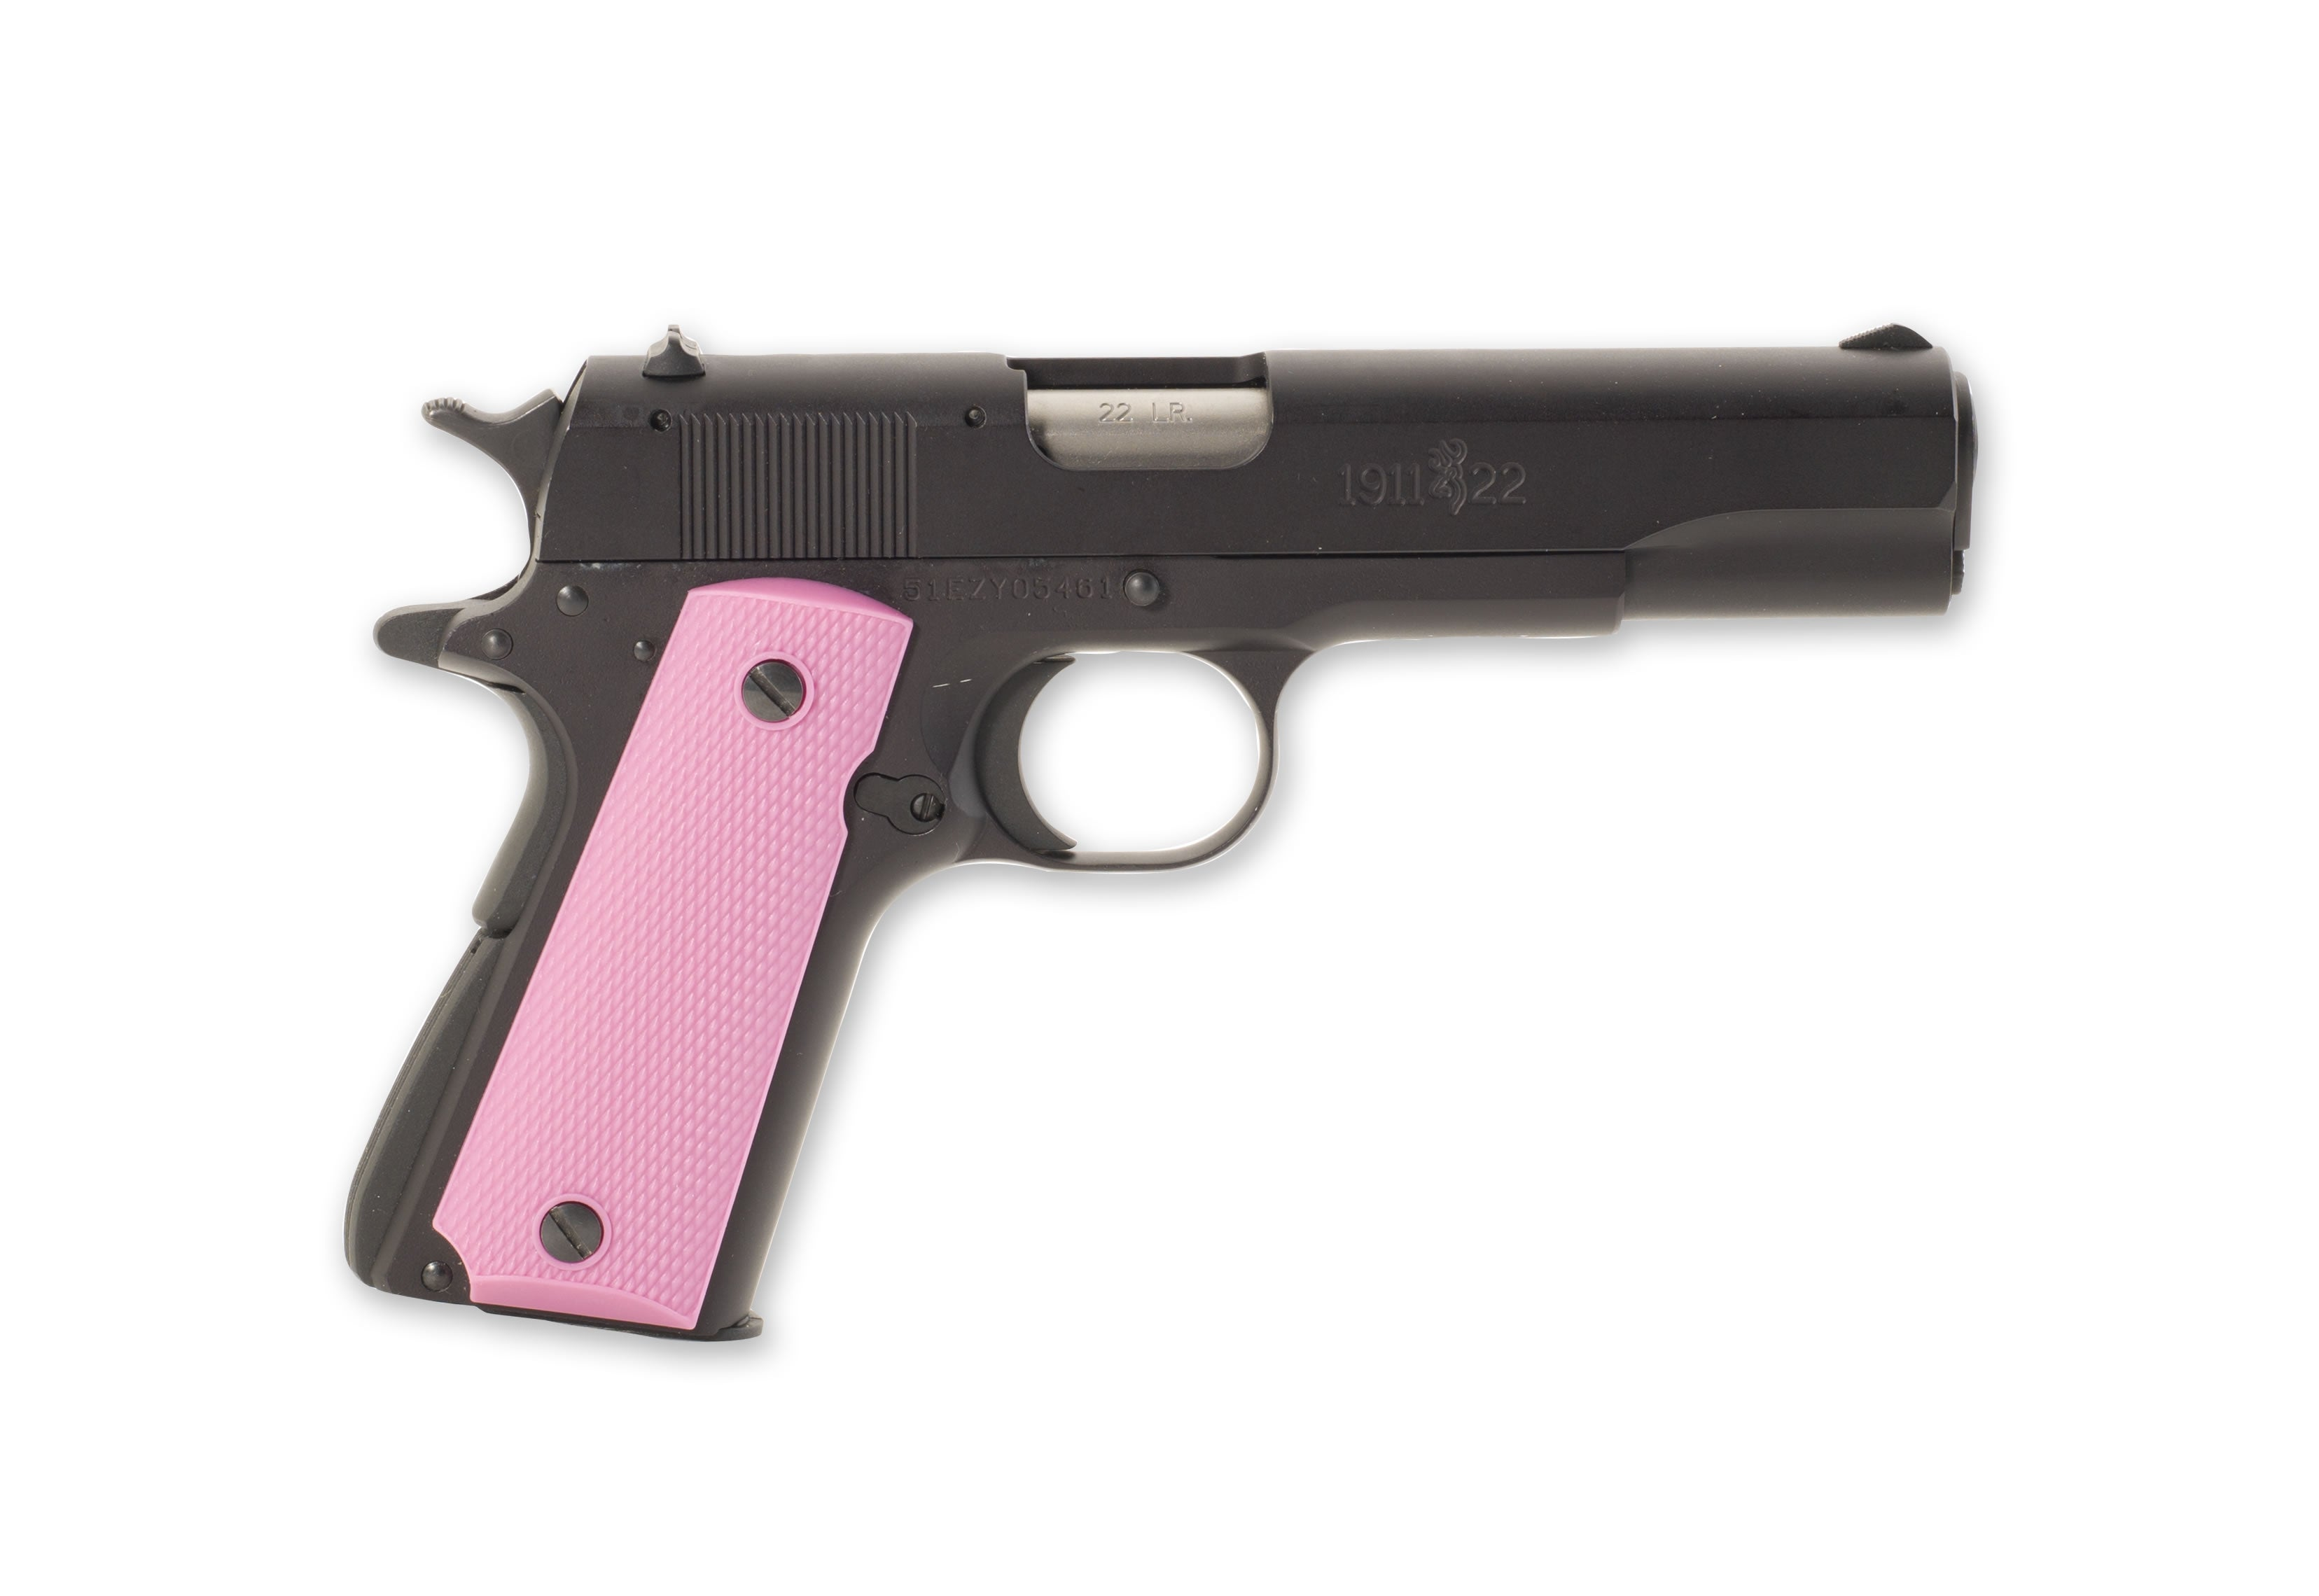 1911-22 A1 Compact Black and Pink